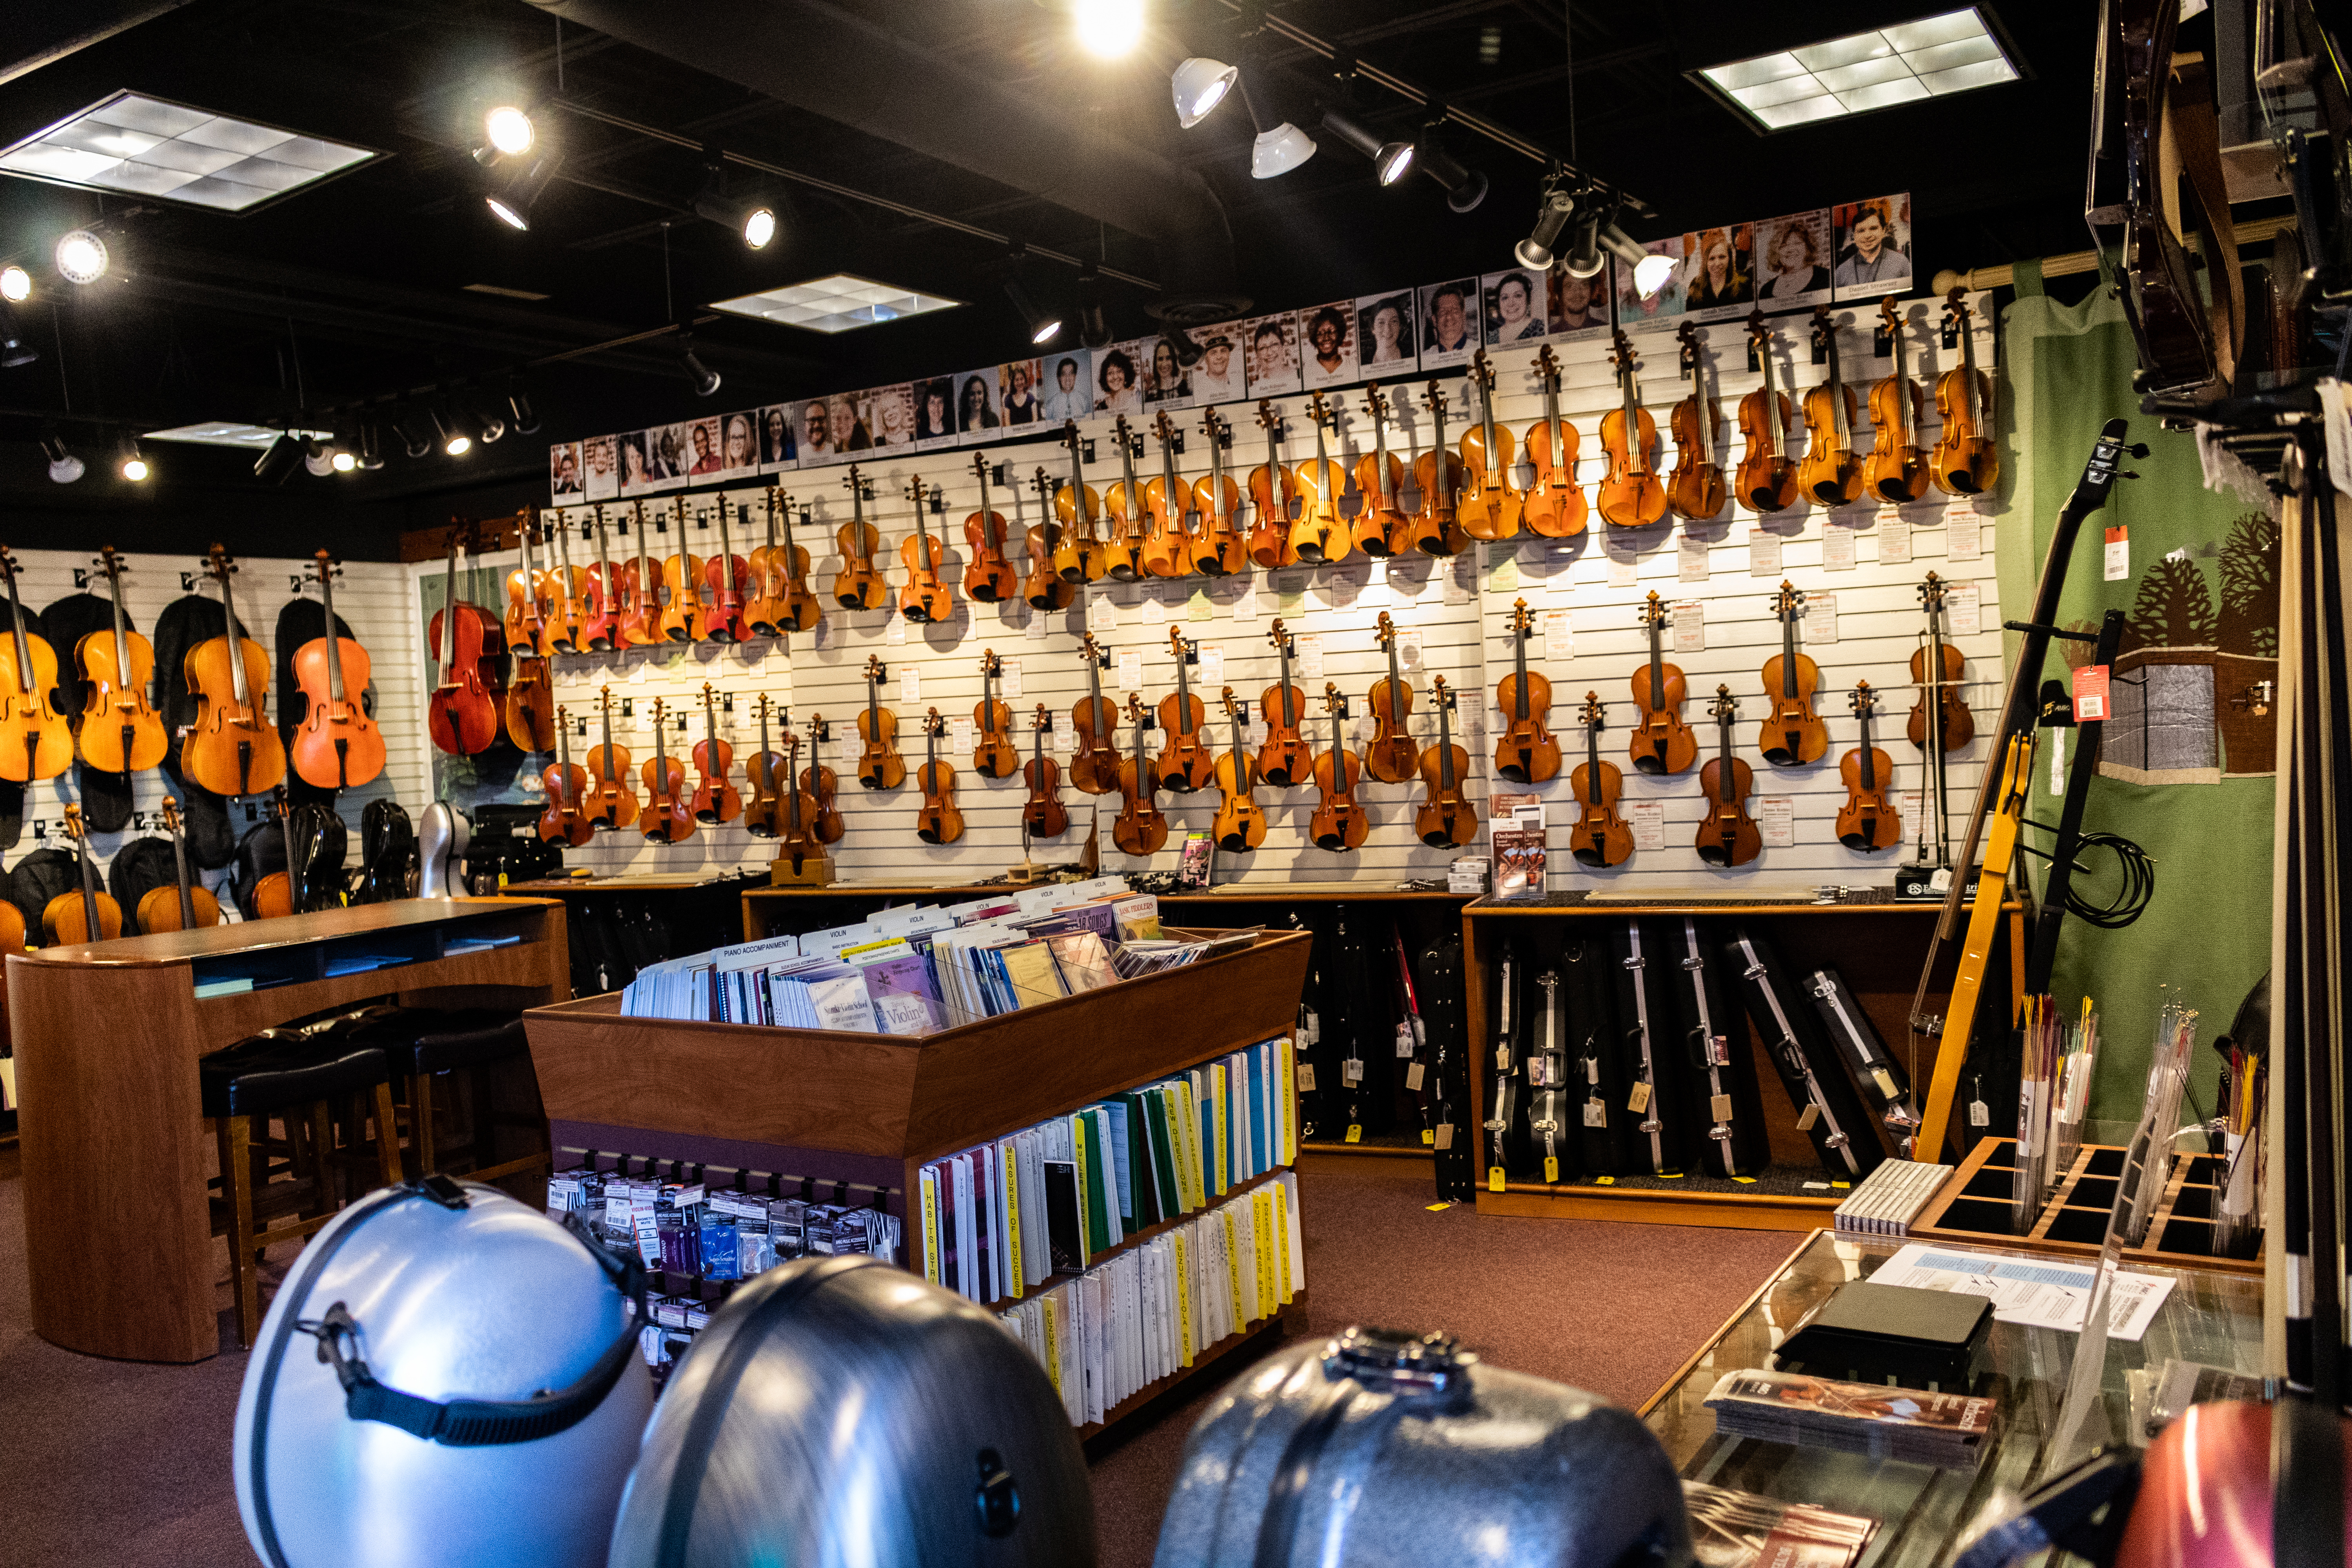 Violins, violas, cellos, sheet music, and string accessories can be seen from the front entrance of Amro Music Store